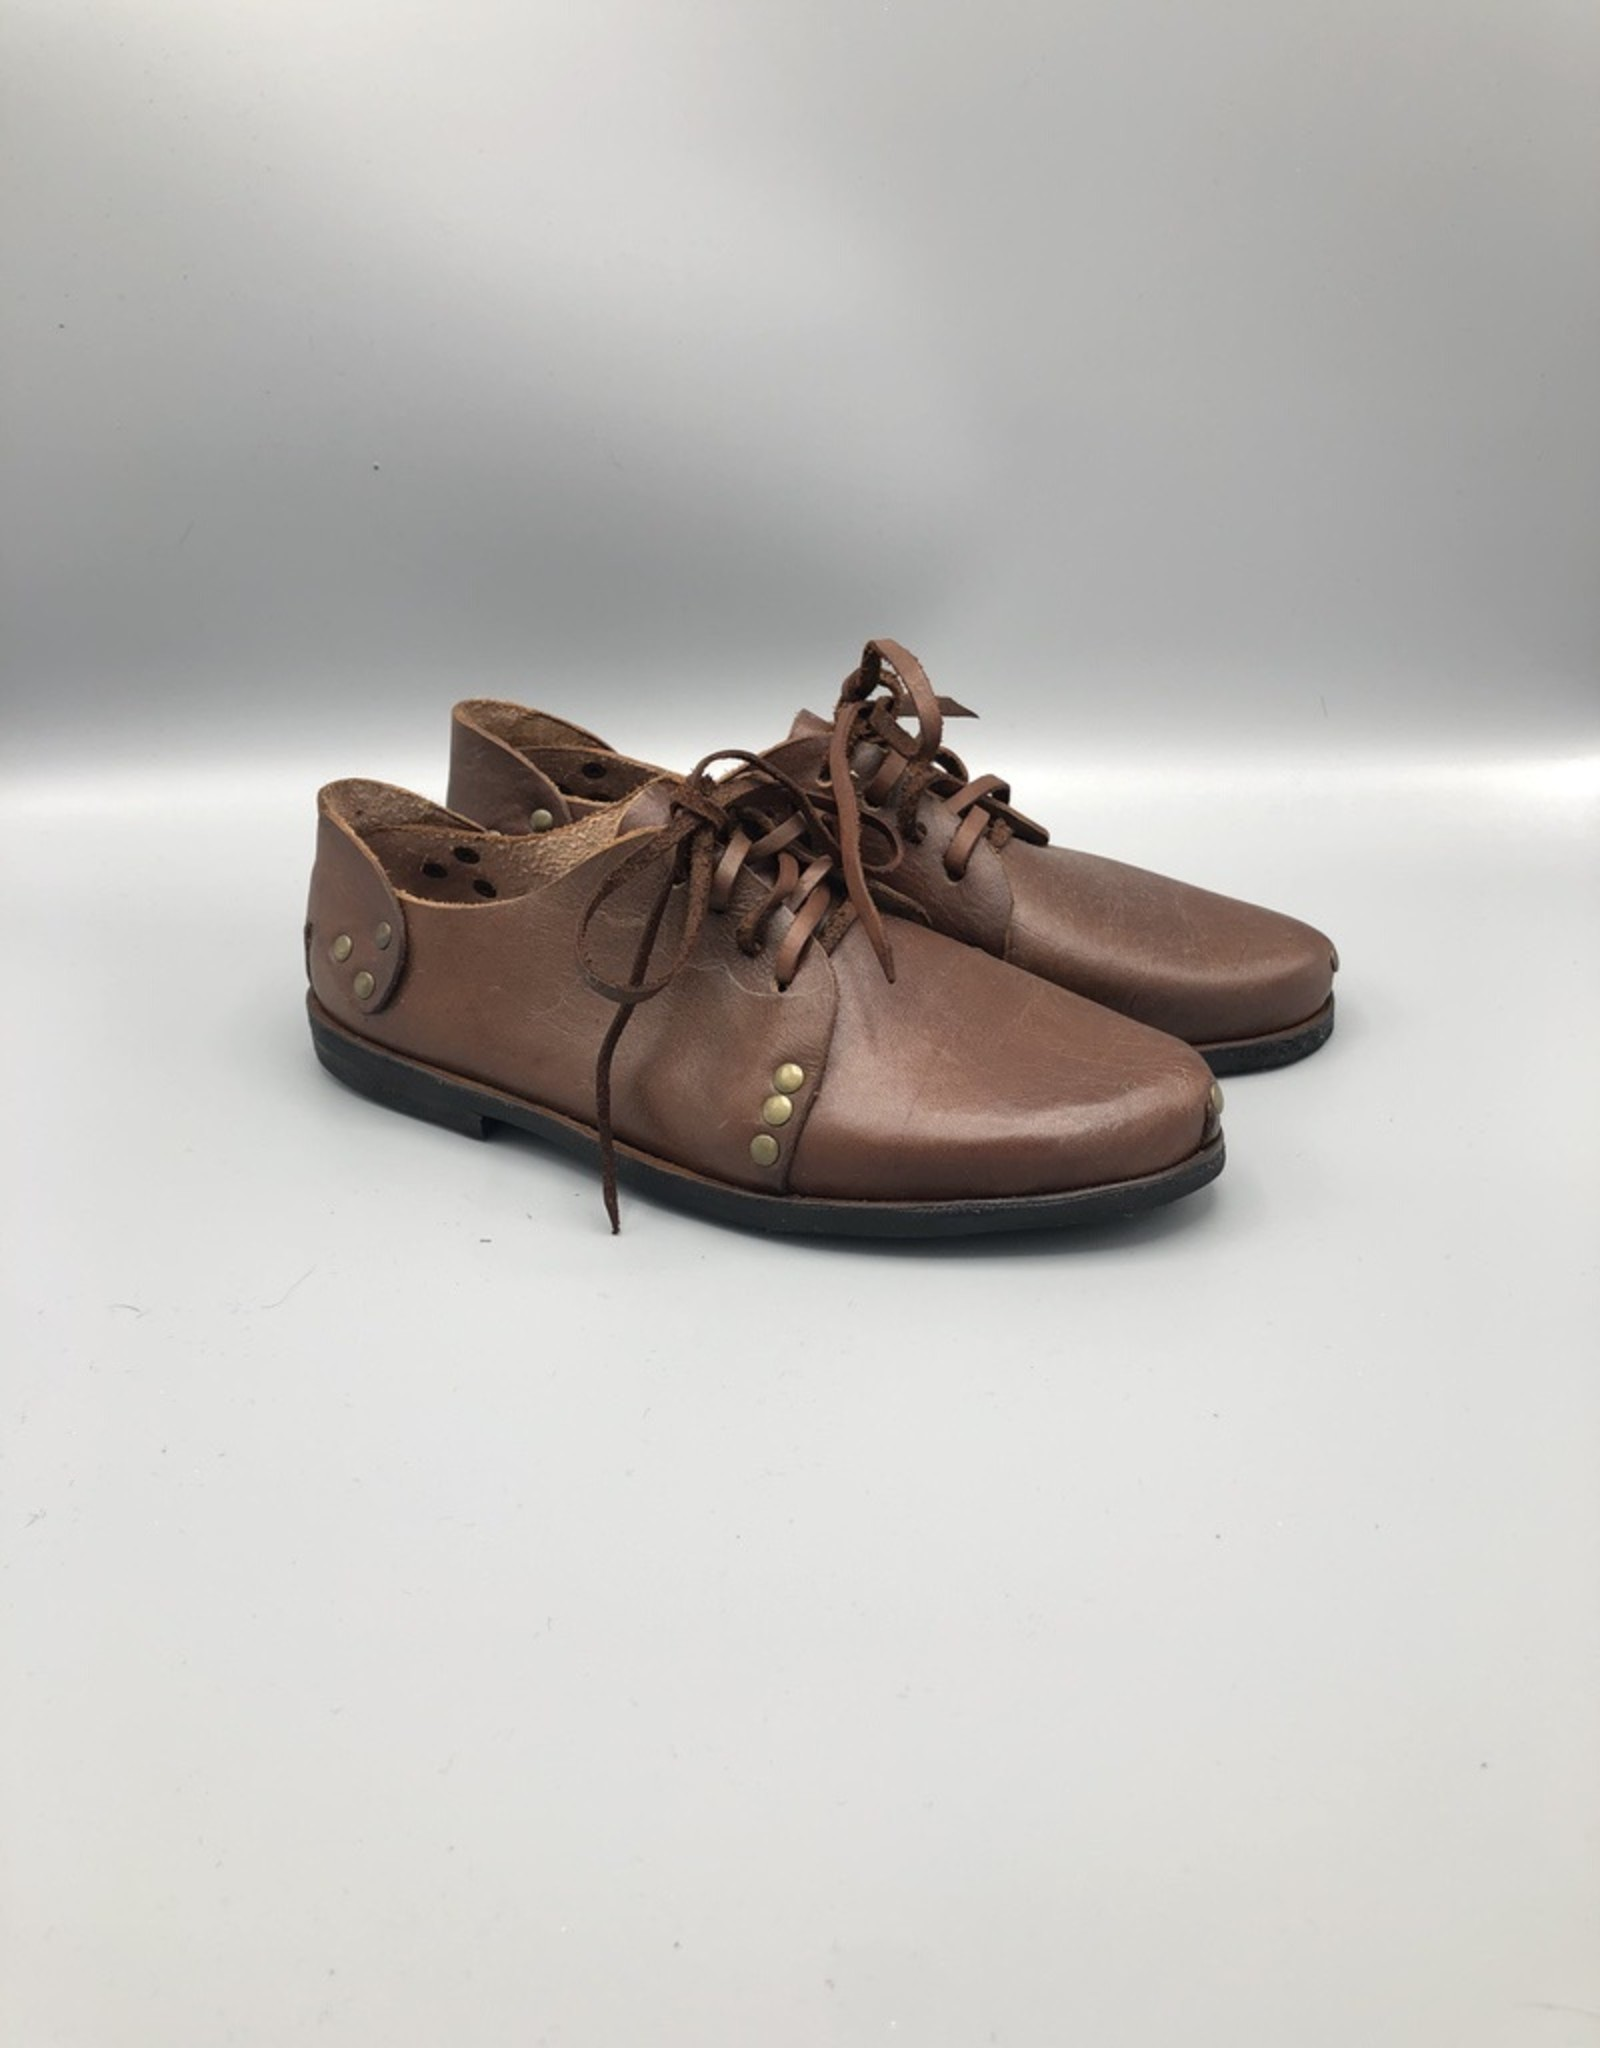 Caboclo Women's Lace Up Leather Oxford